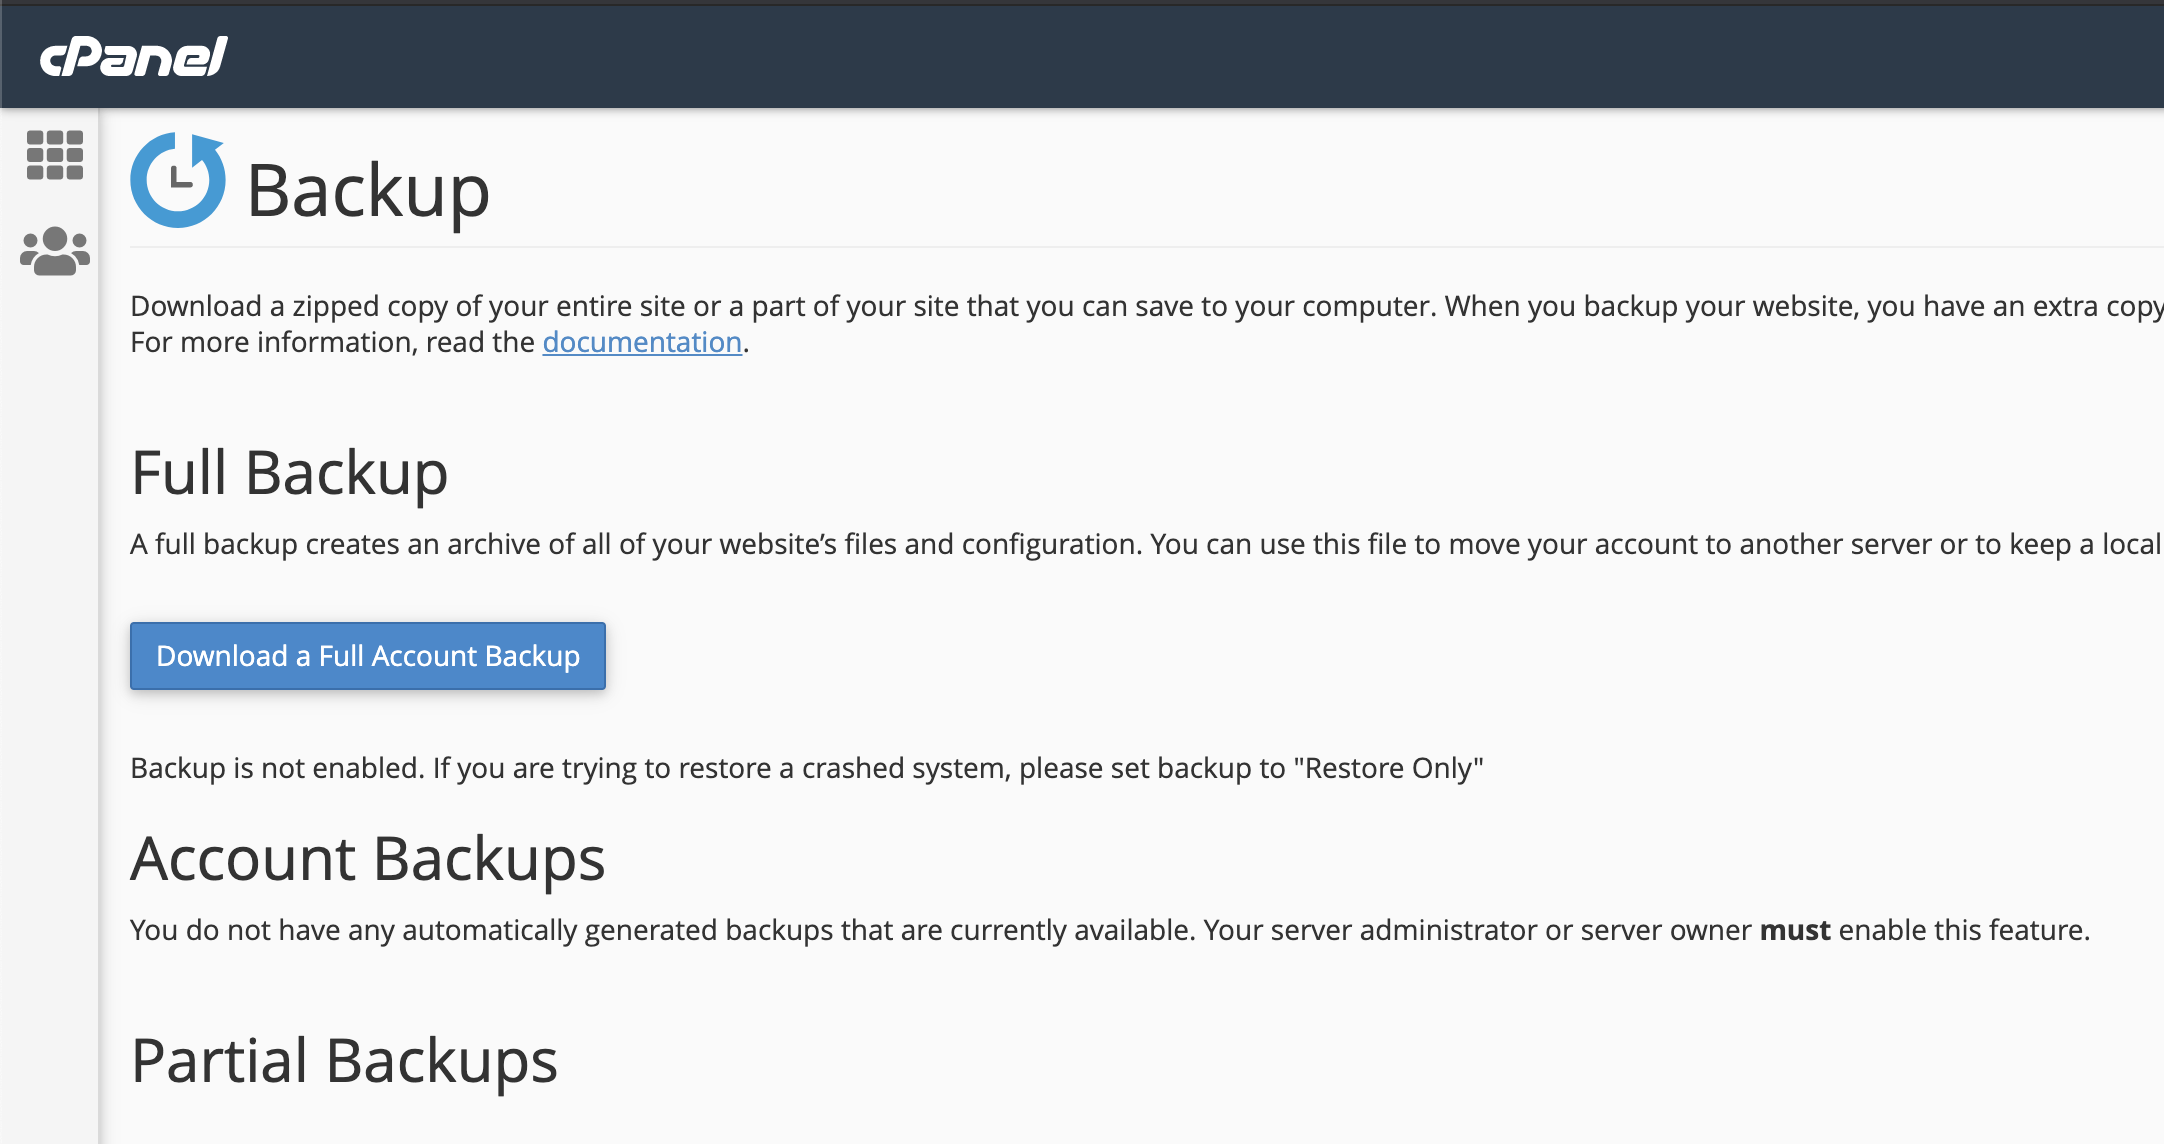 An image showing the option to download a full backup within cPanel